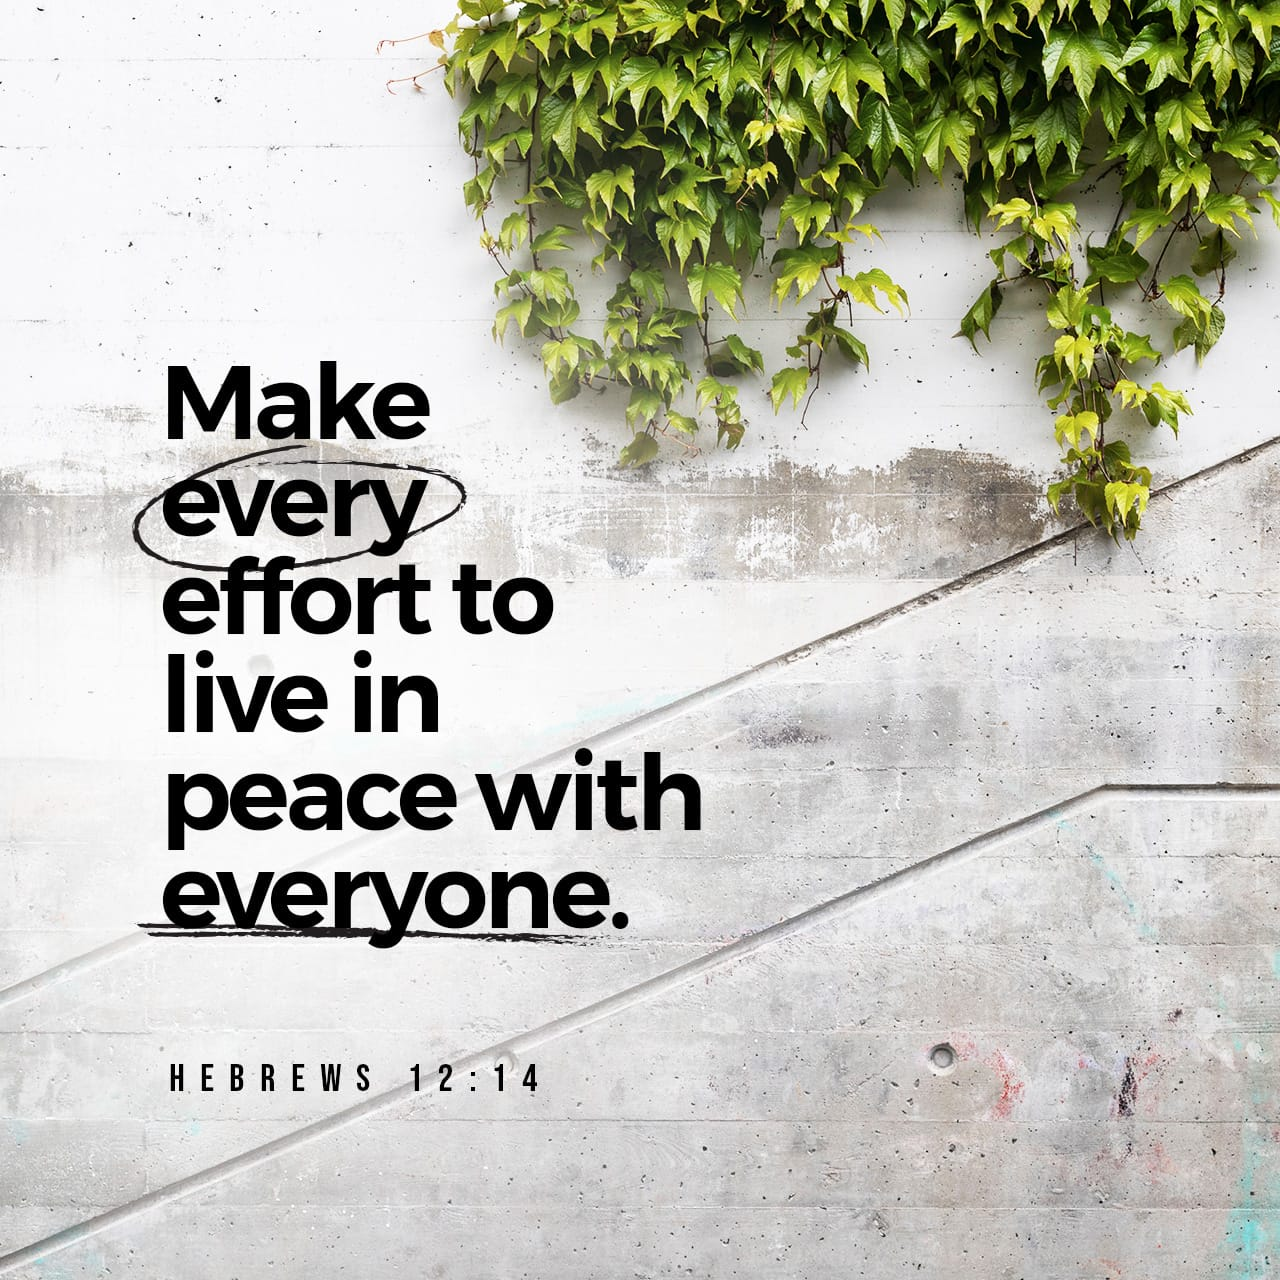 Hebrews 12:14 Follow after peace with all men, and the